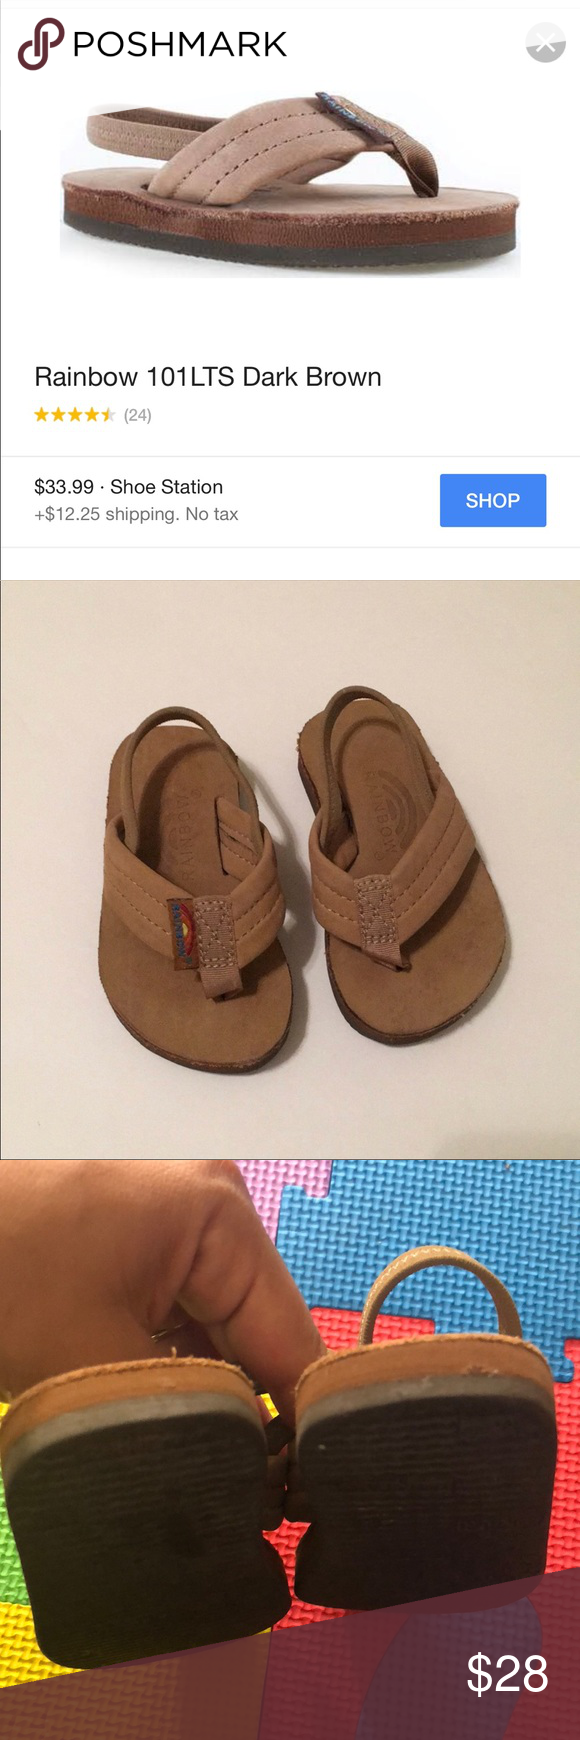 Toddler Rainbow Sandals Classic Brown Beautiful Little Rainbow Sandals Size 6c Perfect For The Beach Used Twice Si Rainbow Sandals Rainbow Shoes Classic Tan